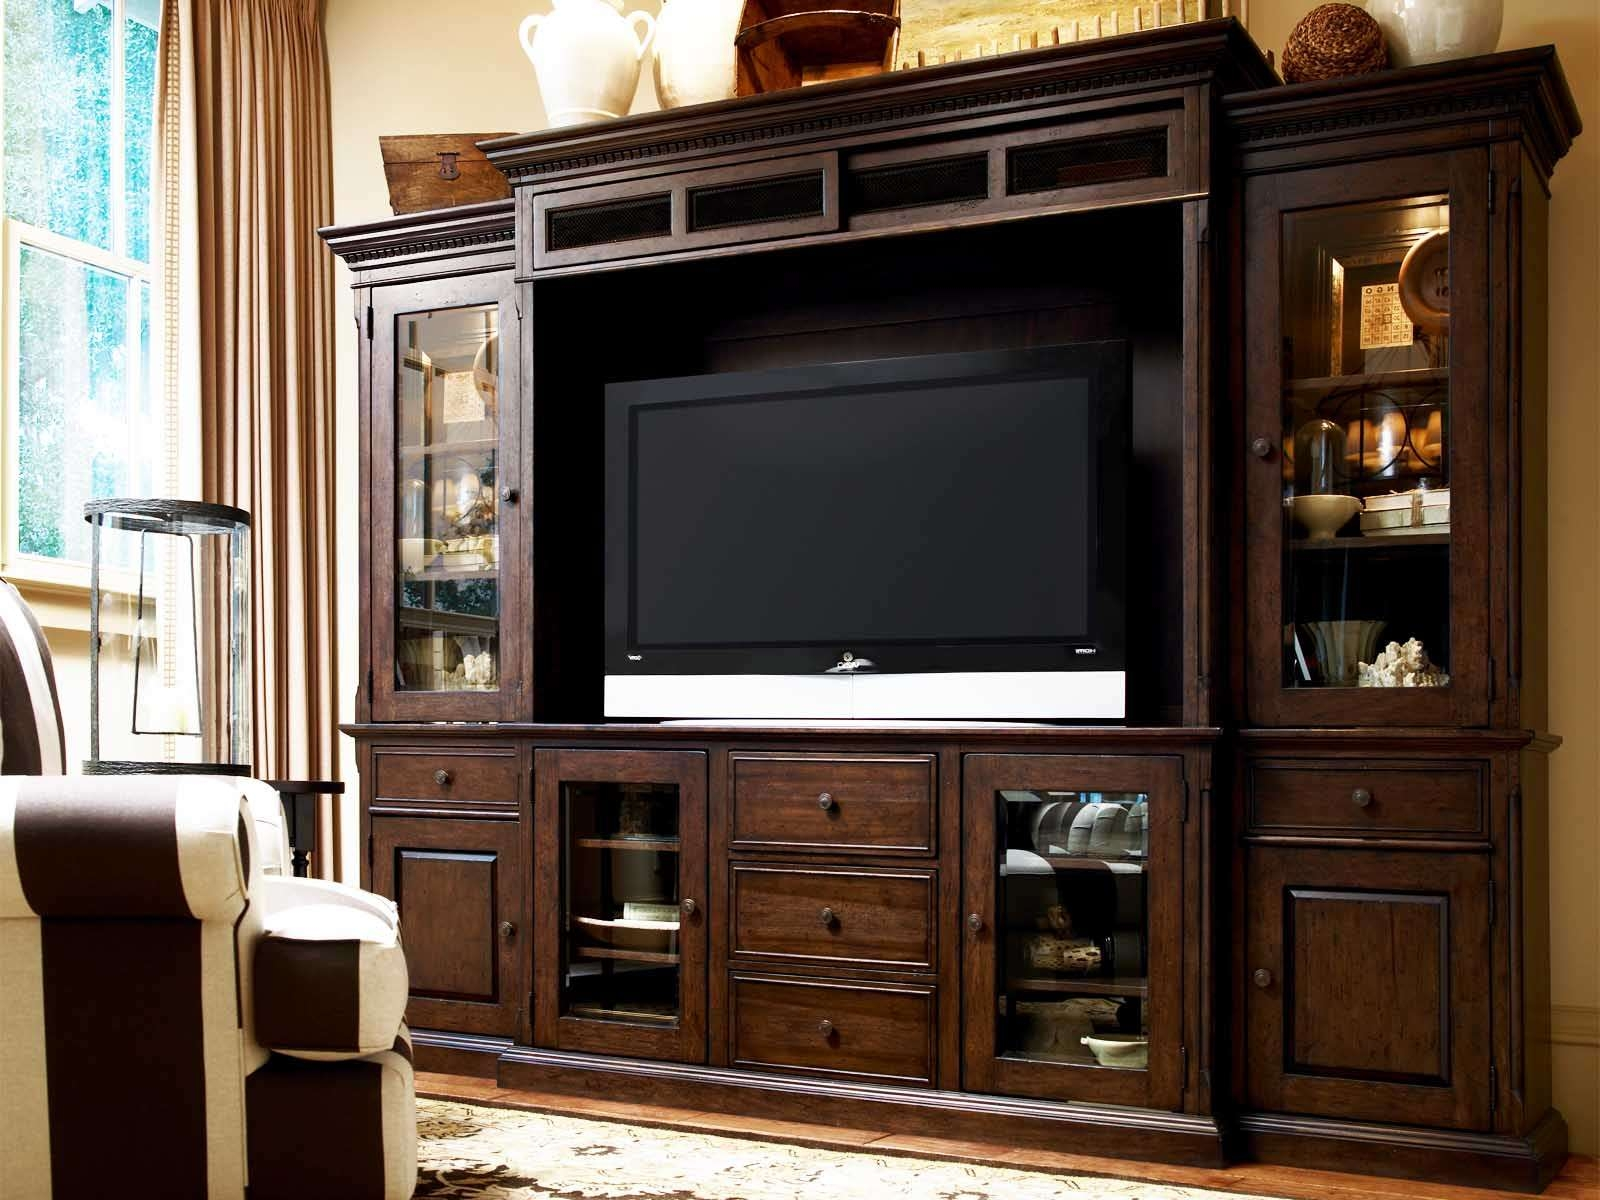 Tv Stand With Hutch Be Equipped Cabinet Drawer Made Of Wood For For Tv Cabinets With Glass Doors (View 19 of 20)